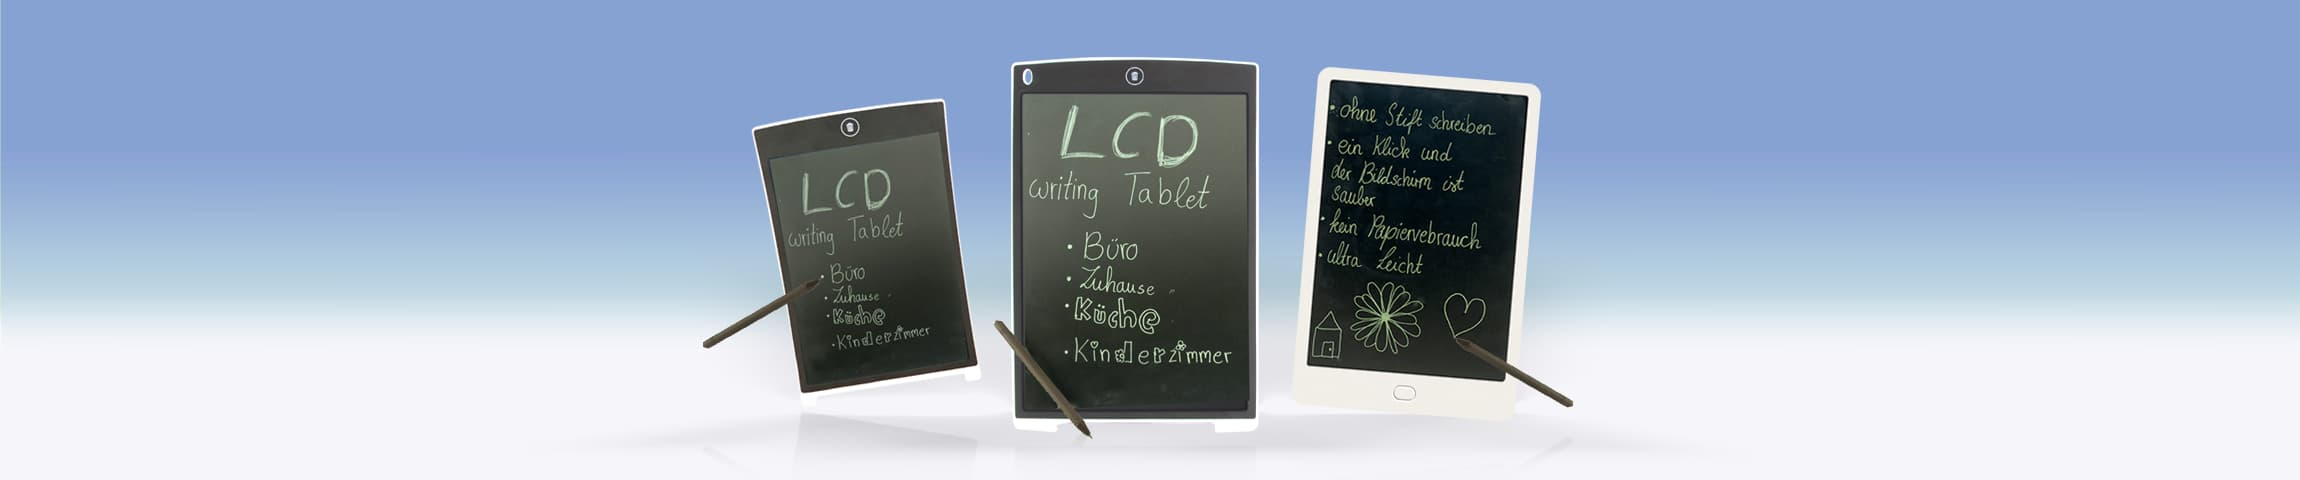 LCD Tablets